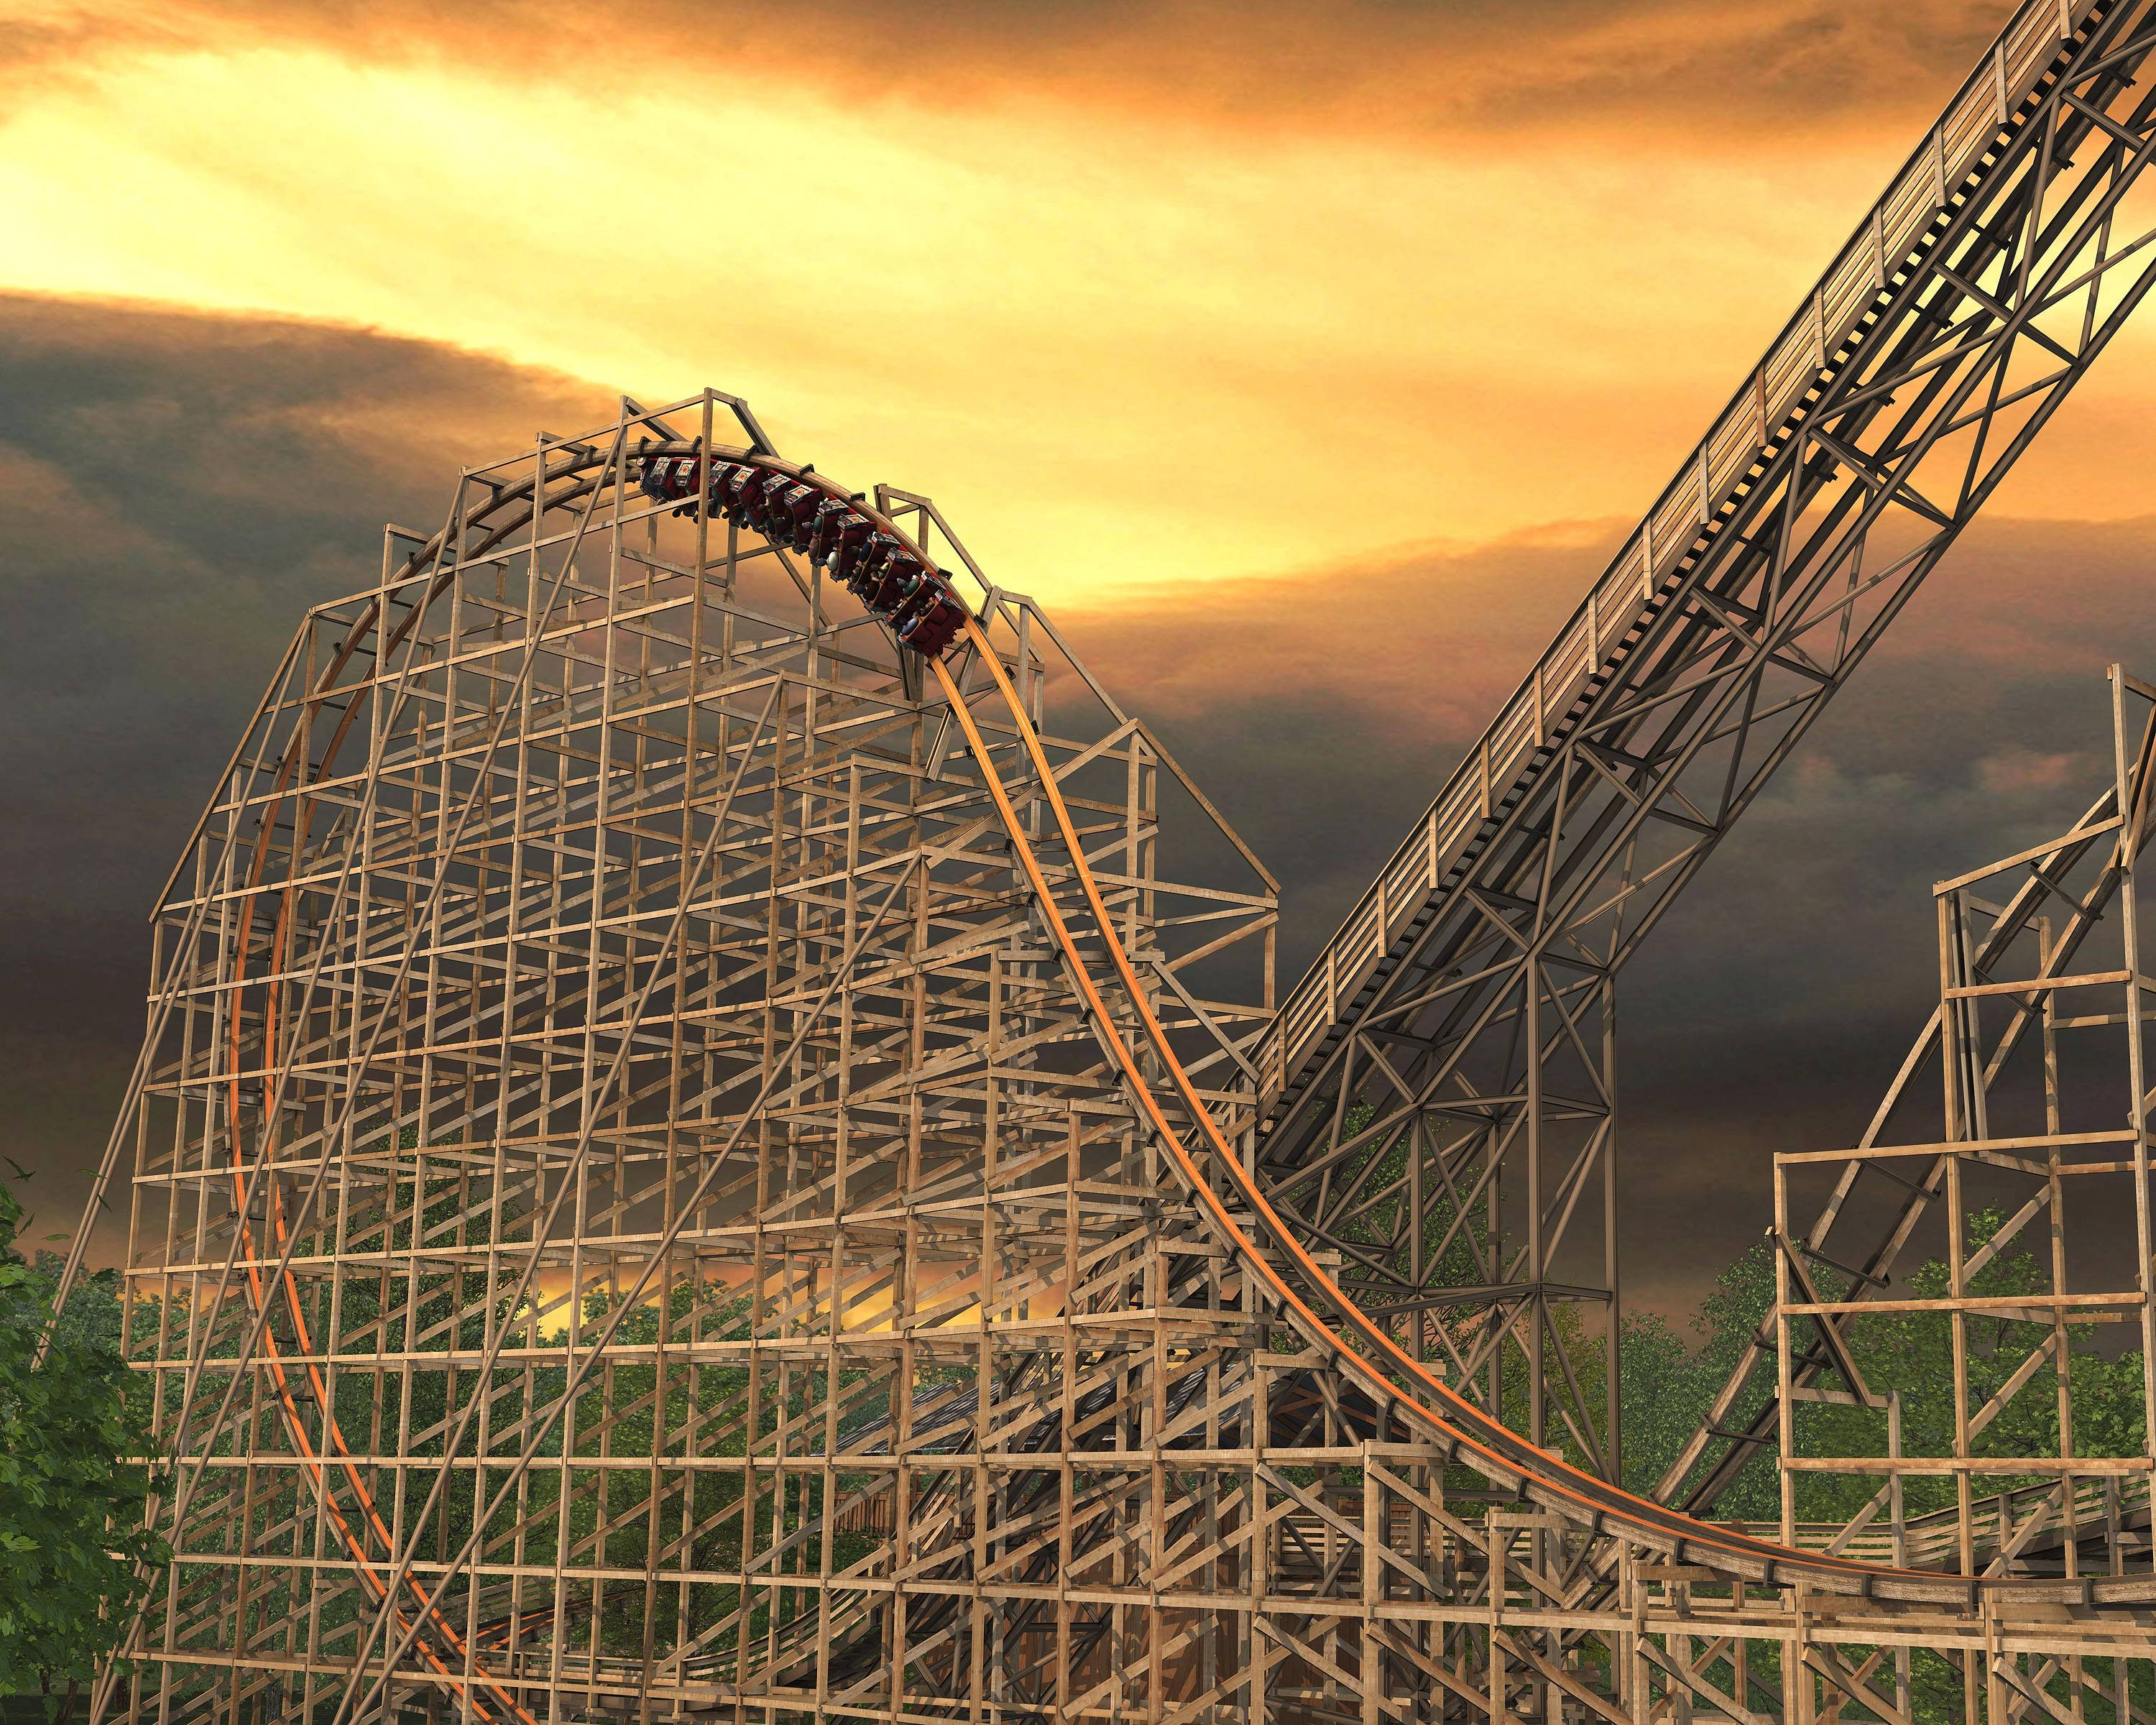 Hold on to your stomach. Great America's new Goliath roller coaster, set to debut this spring in Gurnee, is said to be the world's fastest wooden roller coaster. It also features the tallest drop of a wooden coaster -- 180 feet.